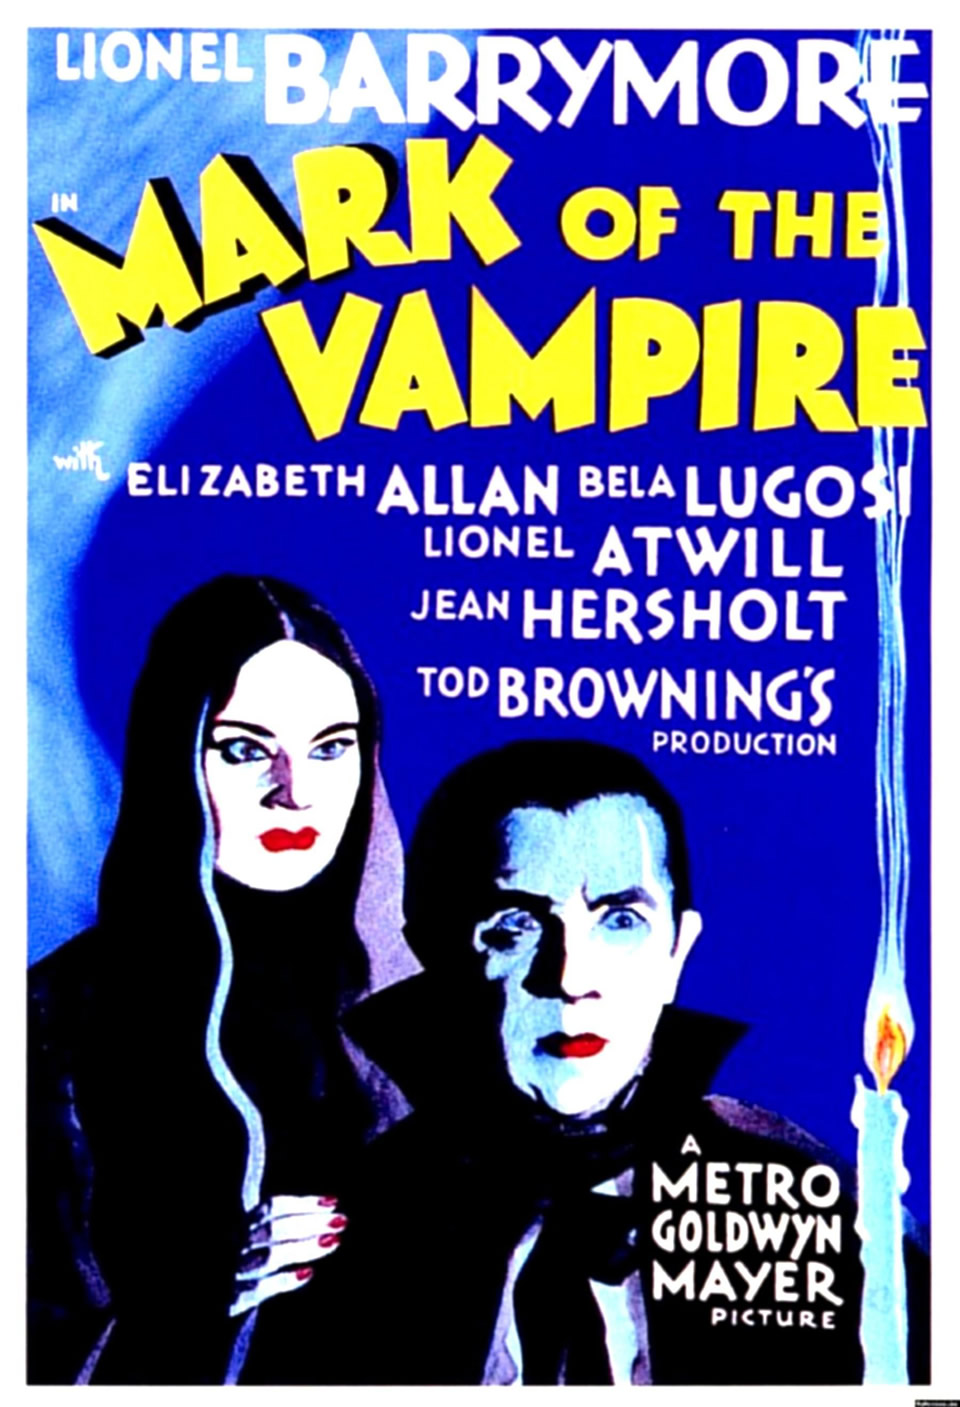 09 - Mark of the Vampire (1935)